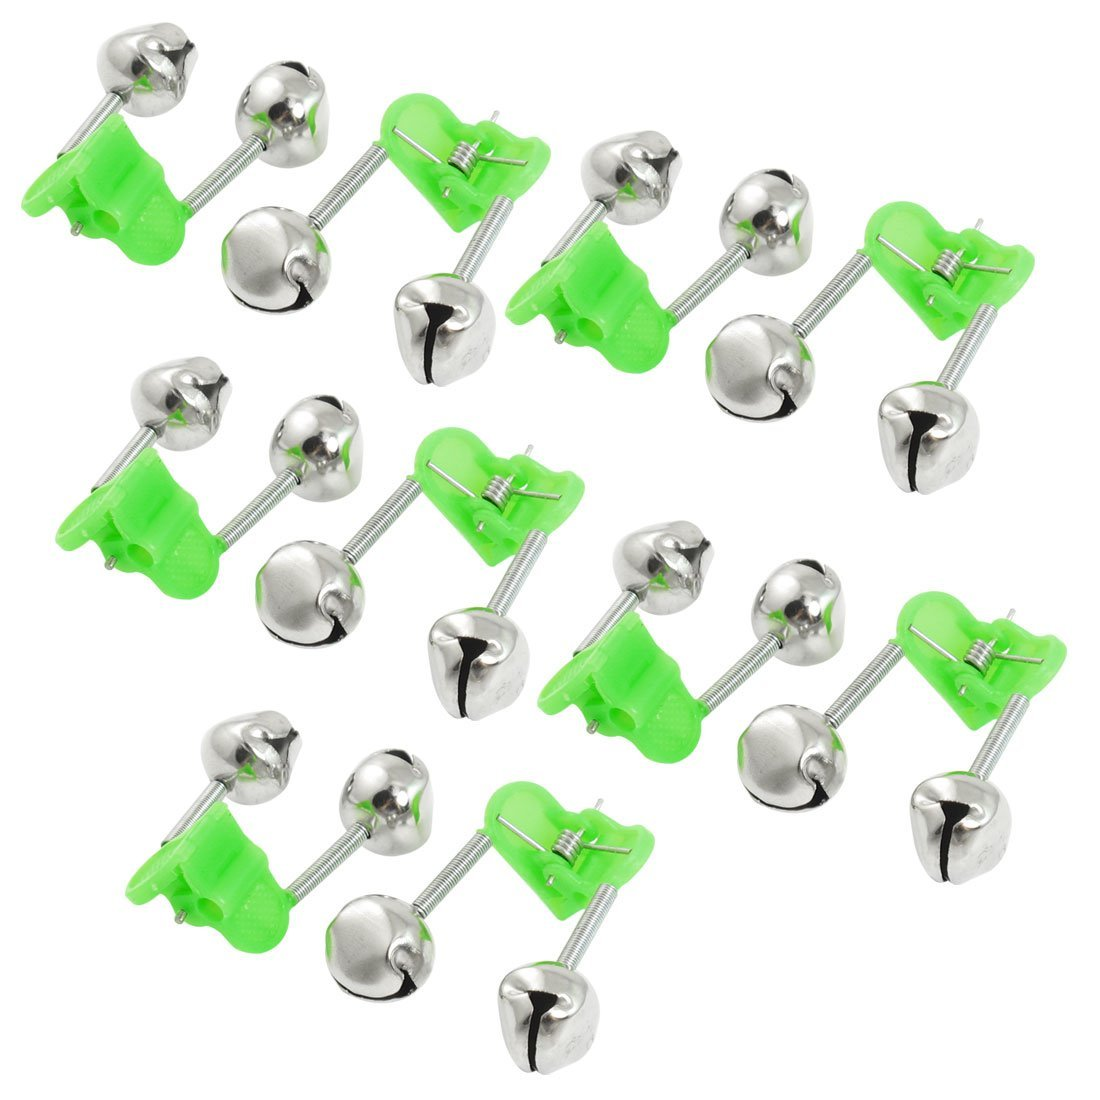 10 Pcs Green Spring Loaded Clip Double Fishing Rod Alarm Bells(China)